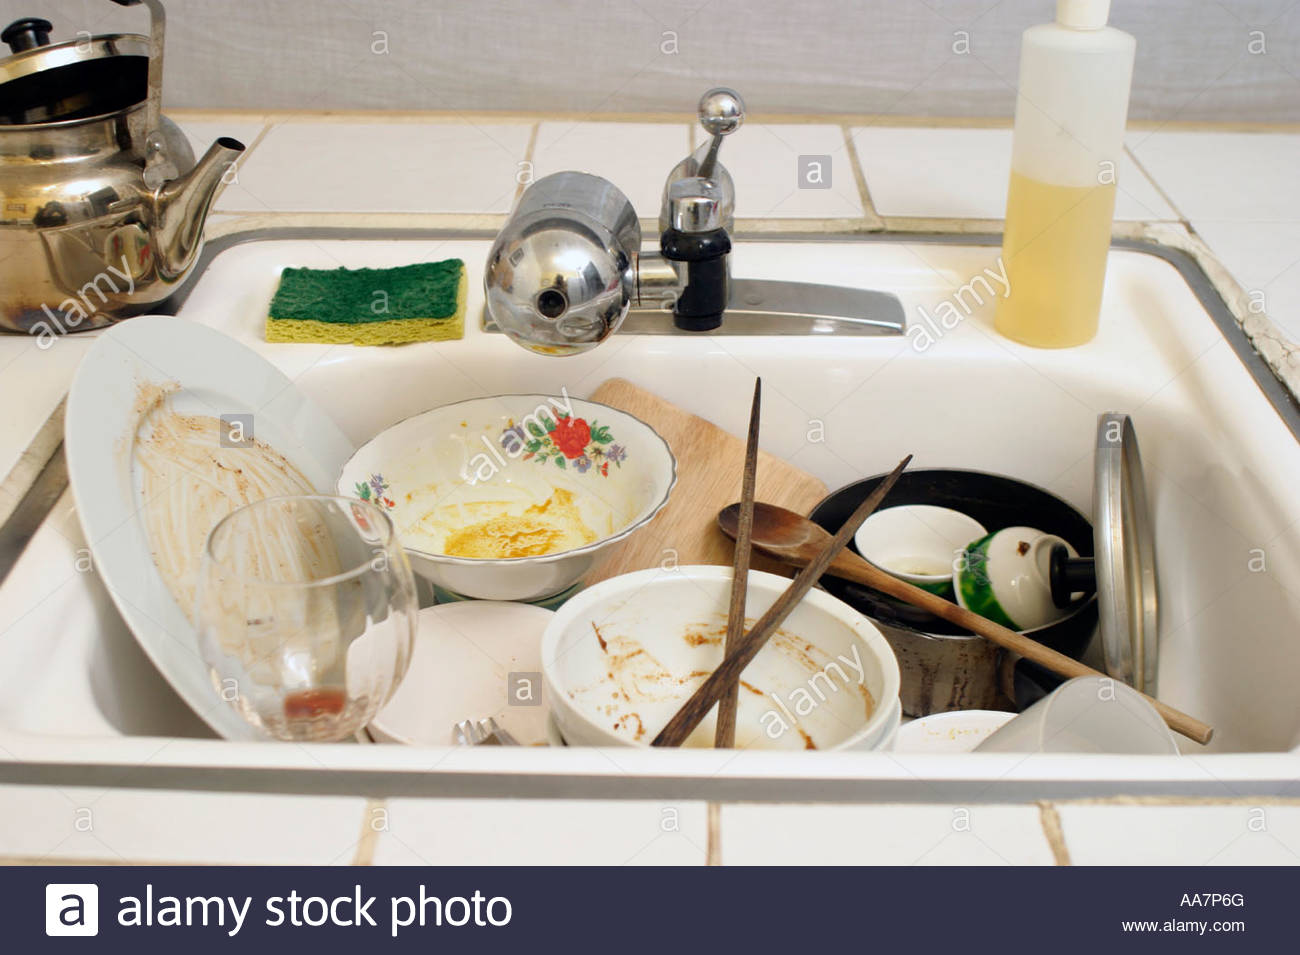 Kitchen Sink With Dishes kitchen sink full of dirty dishes stock photo, royalty free image